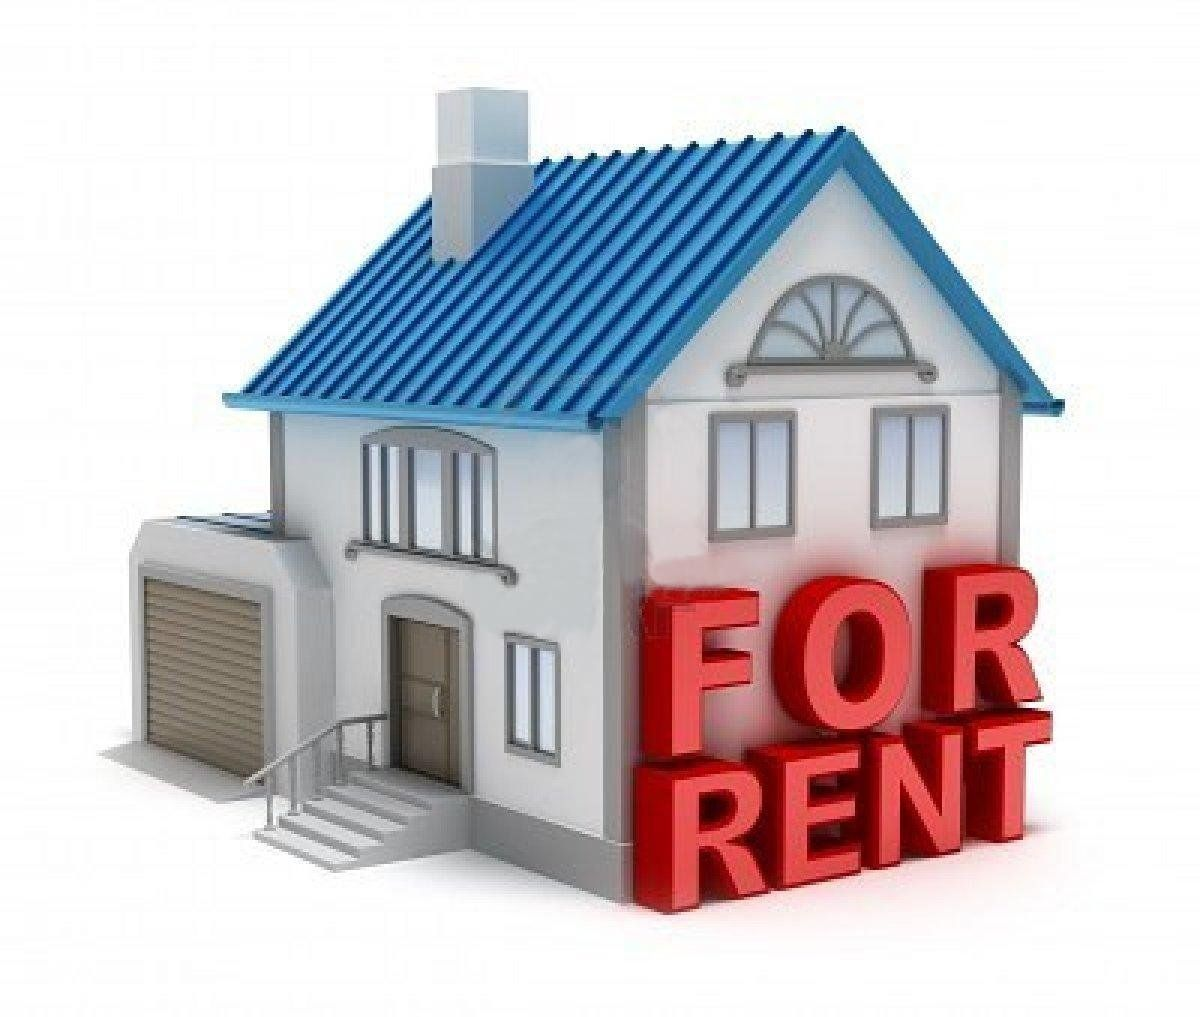 Furnished Apartments Omaha Ne: How To Sell Your House With Tenants In Omaha, Nebraska